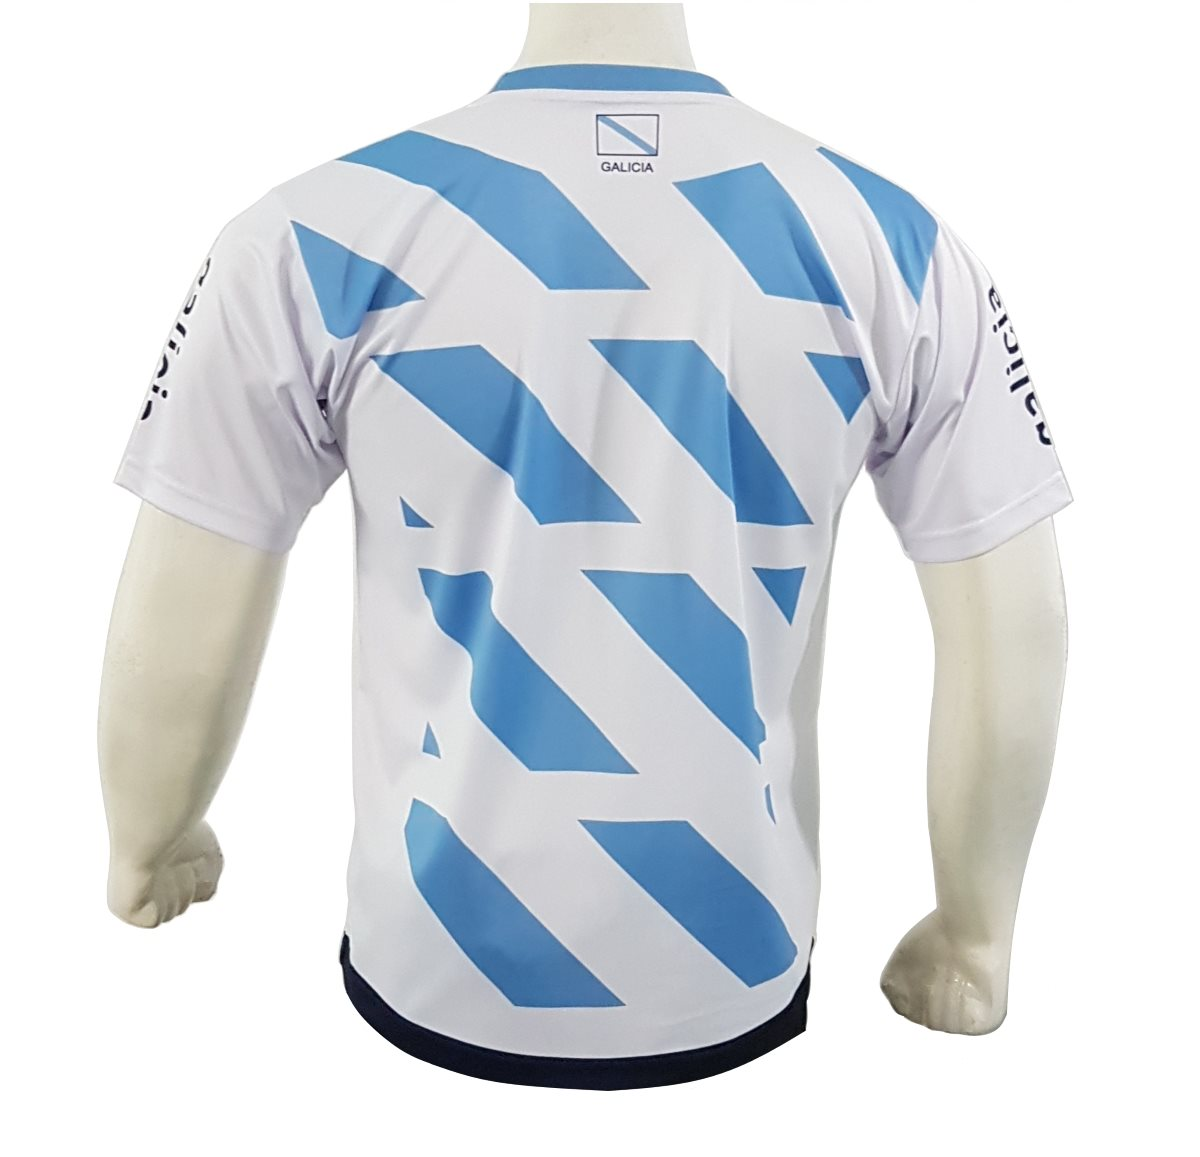 'Team Galicia' kids' football shirt